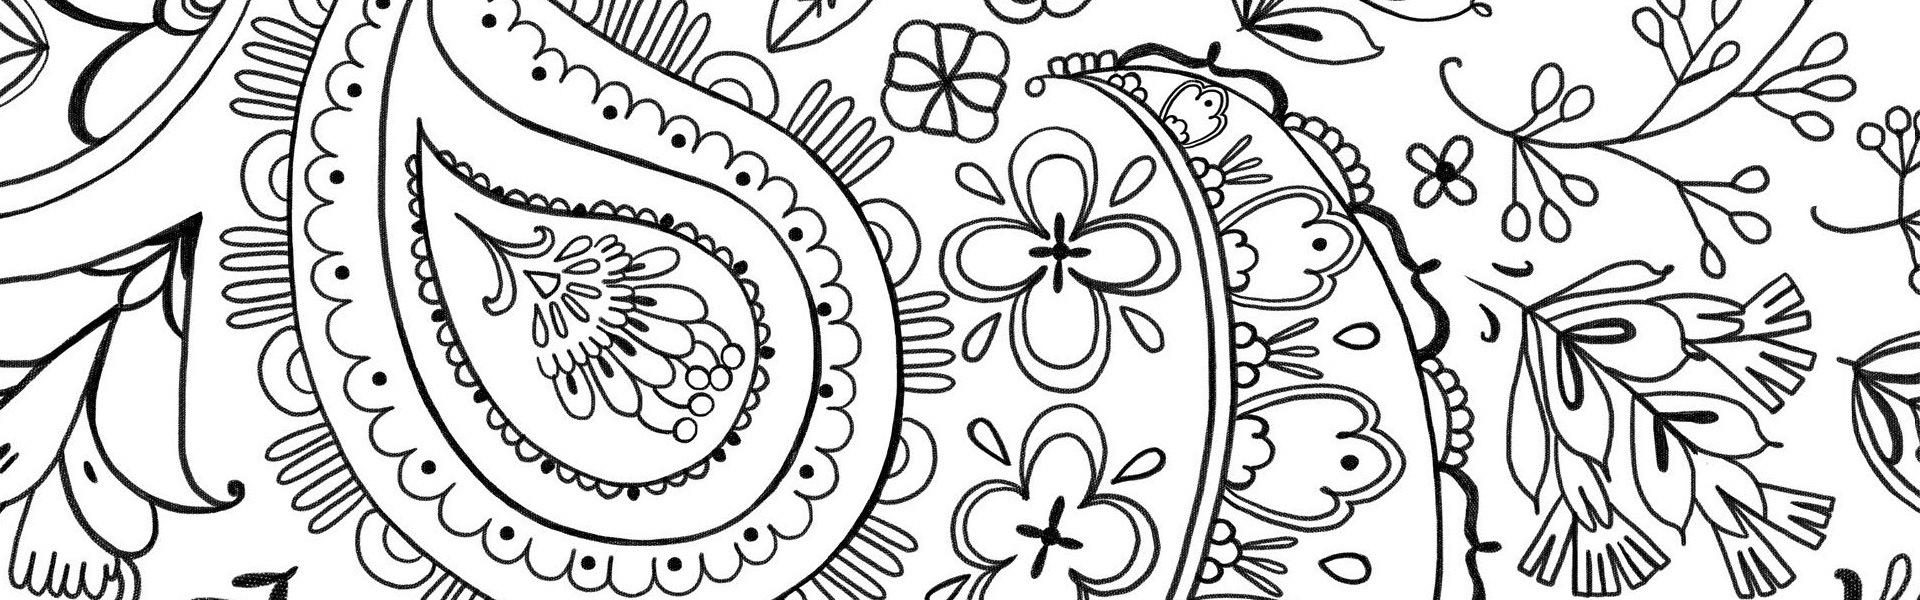 Happy and Energized Colouring Free Pattern Download